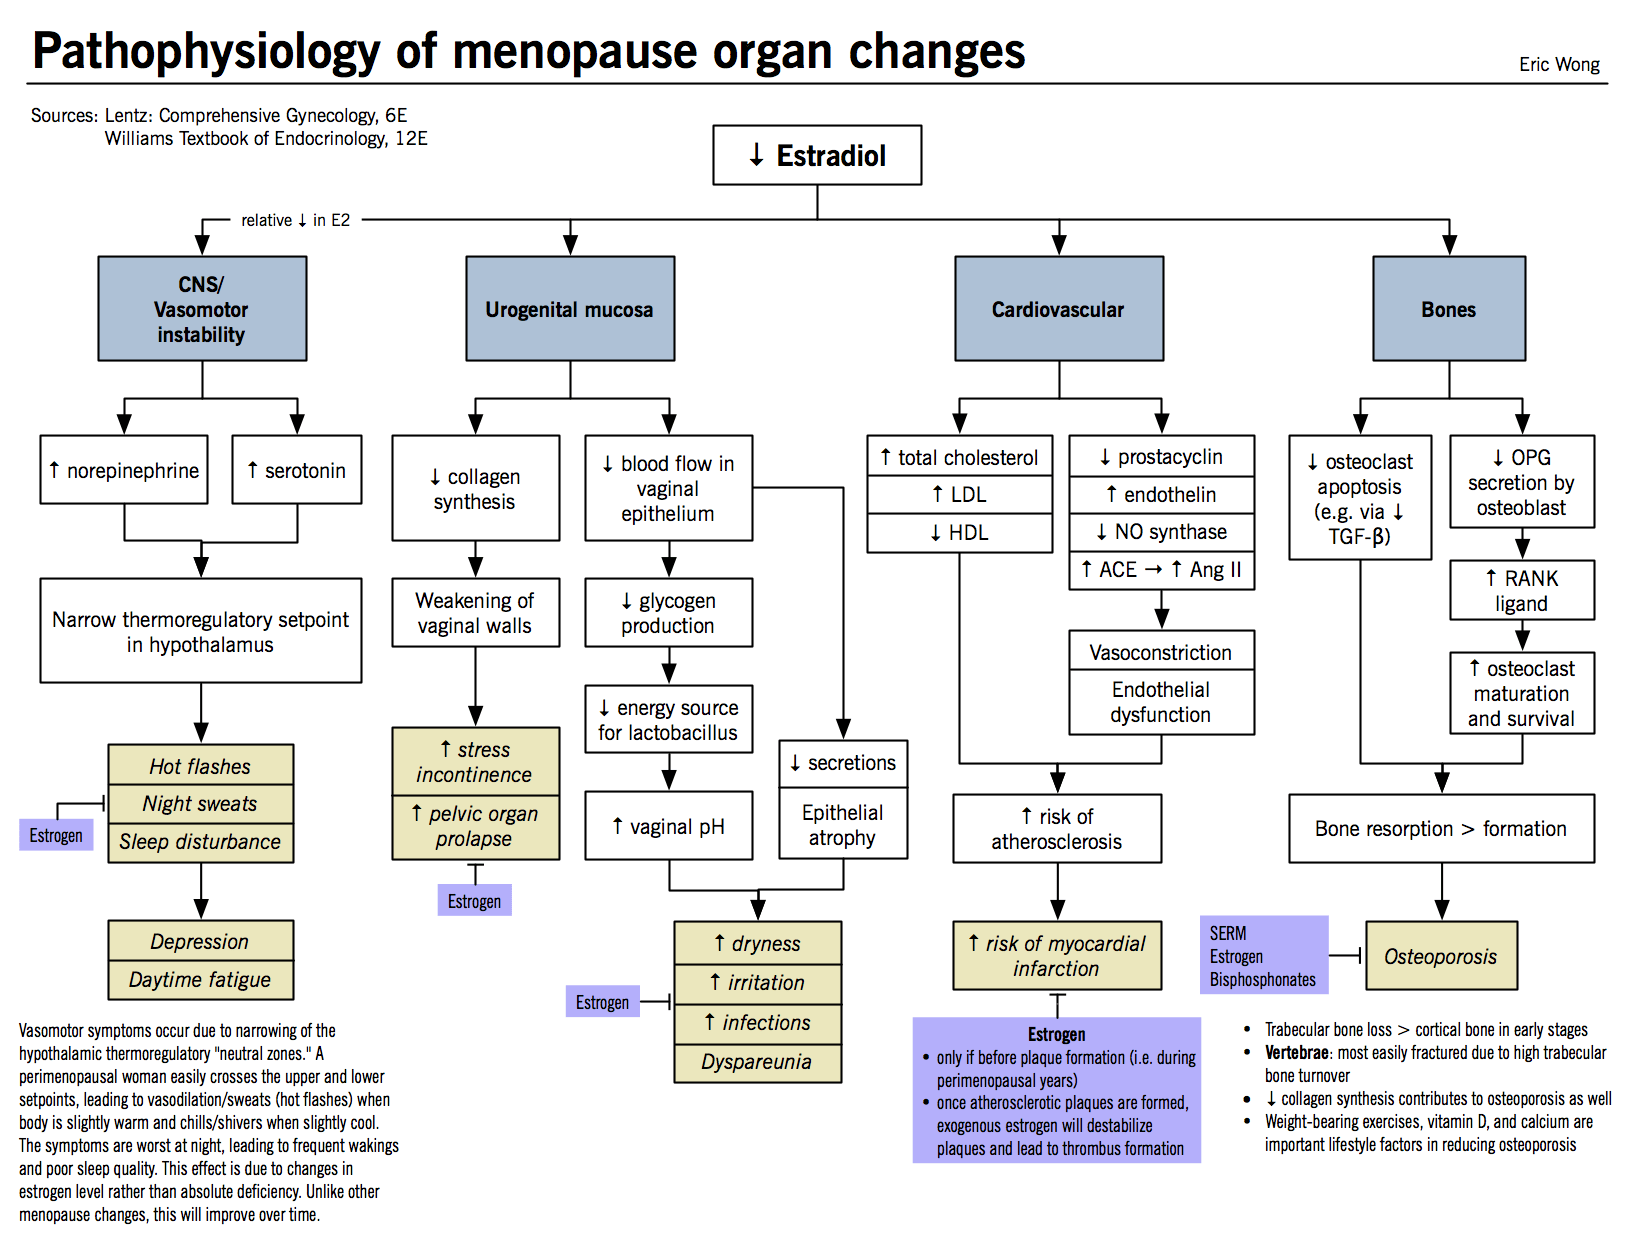 Pathophysiology Of Menopause Organ System Changes